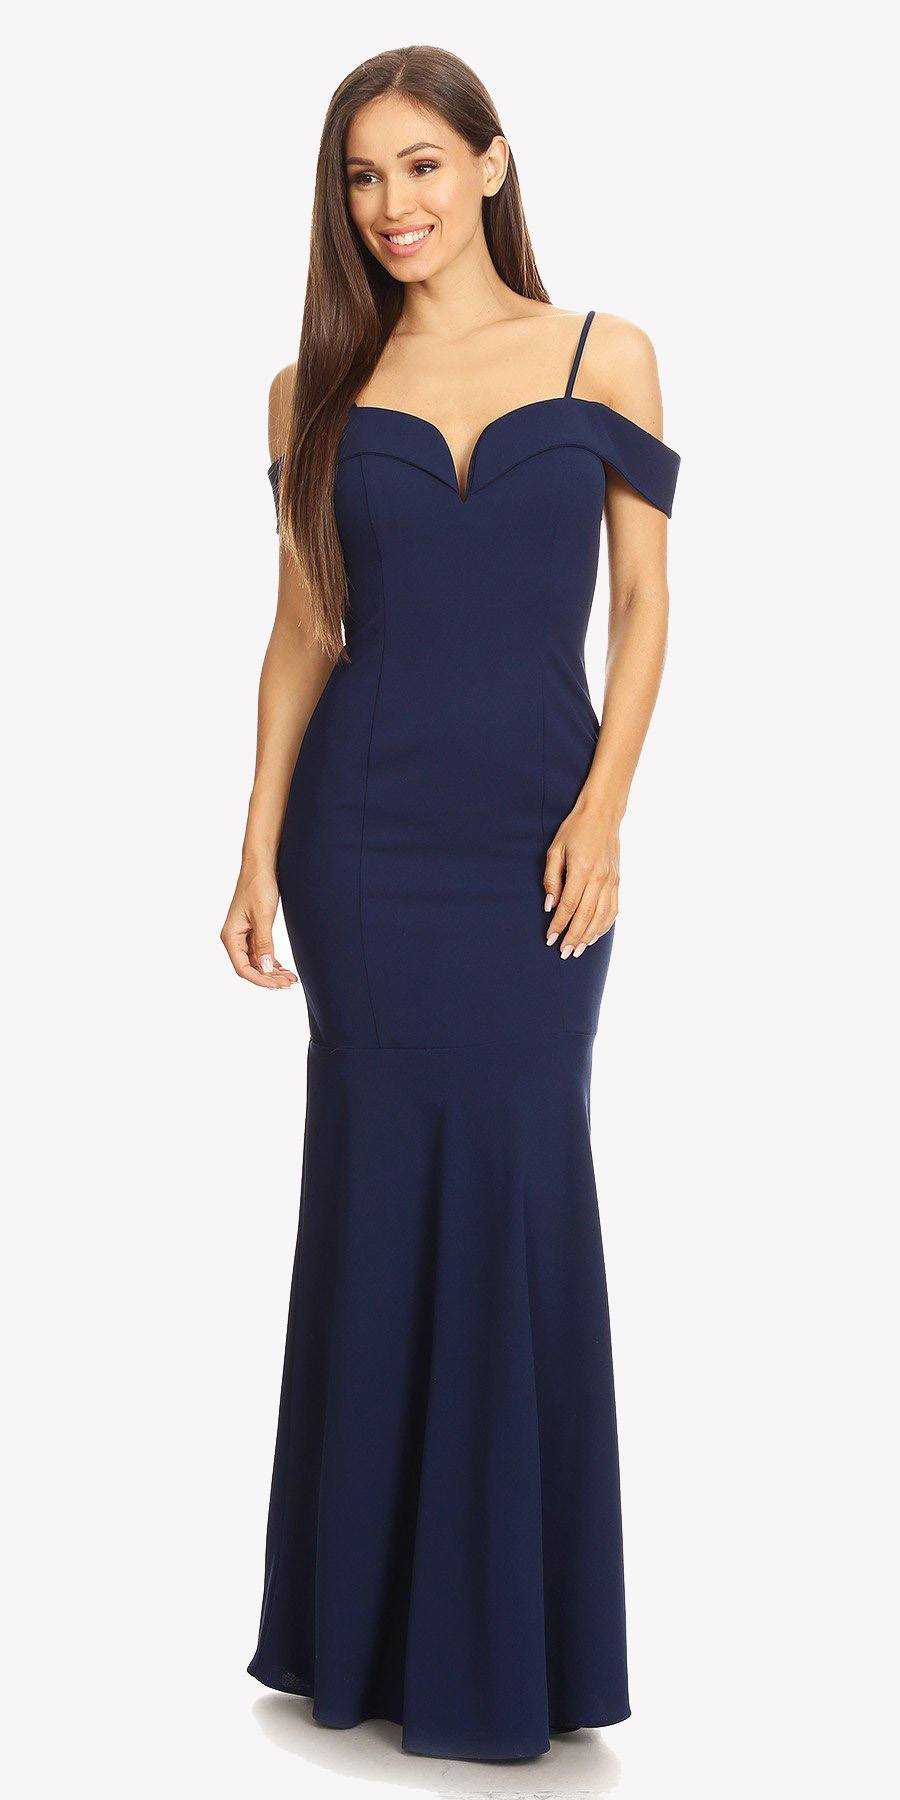 8f7106b2b62e ... Navy Off Shoulder Mermaid Style Evening Gown with Sweetheart Neckline  ...